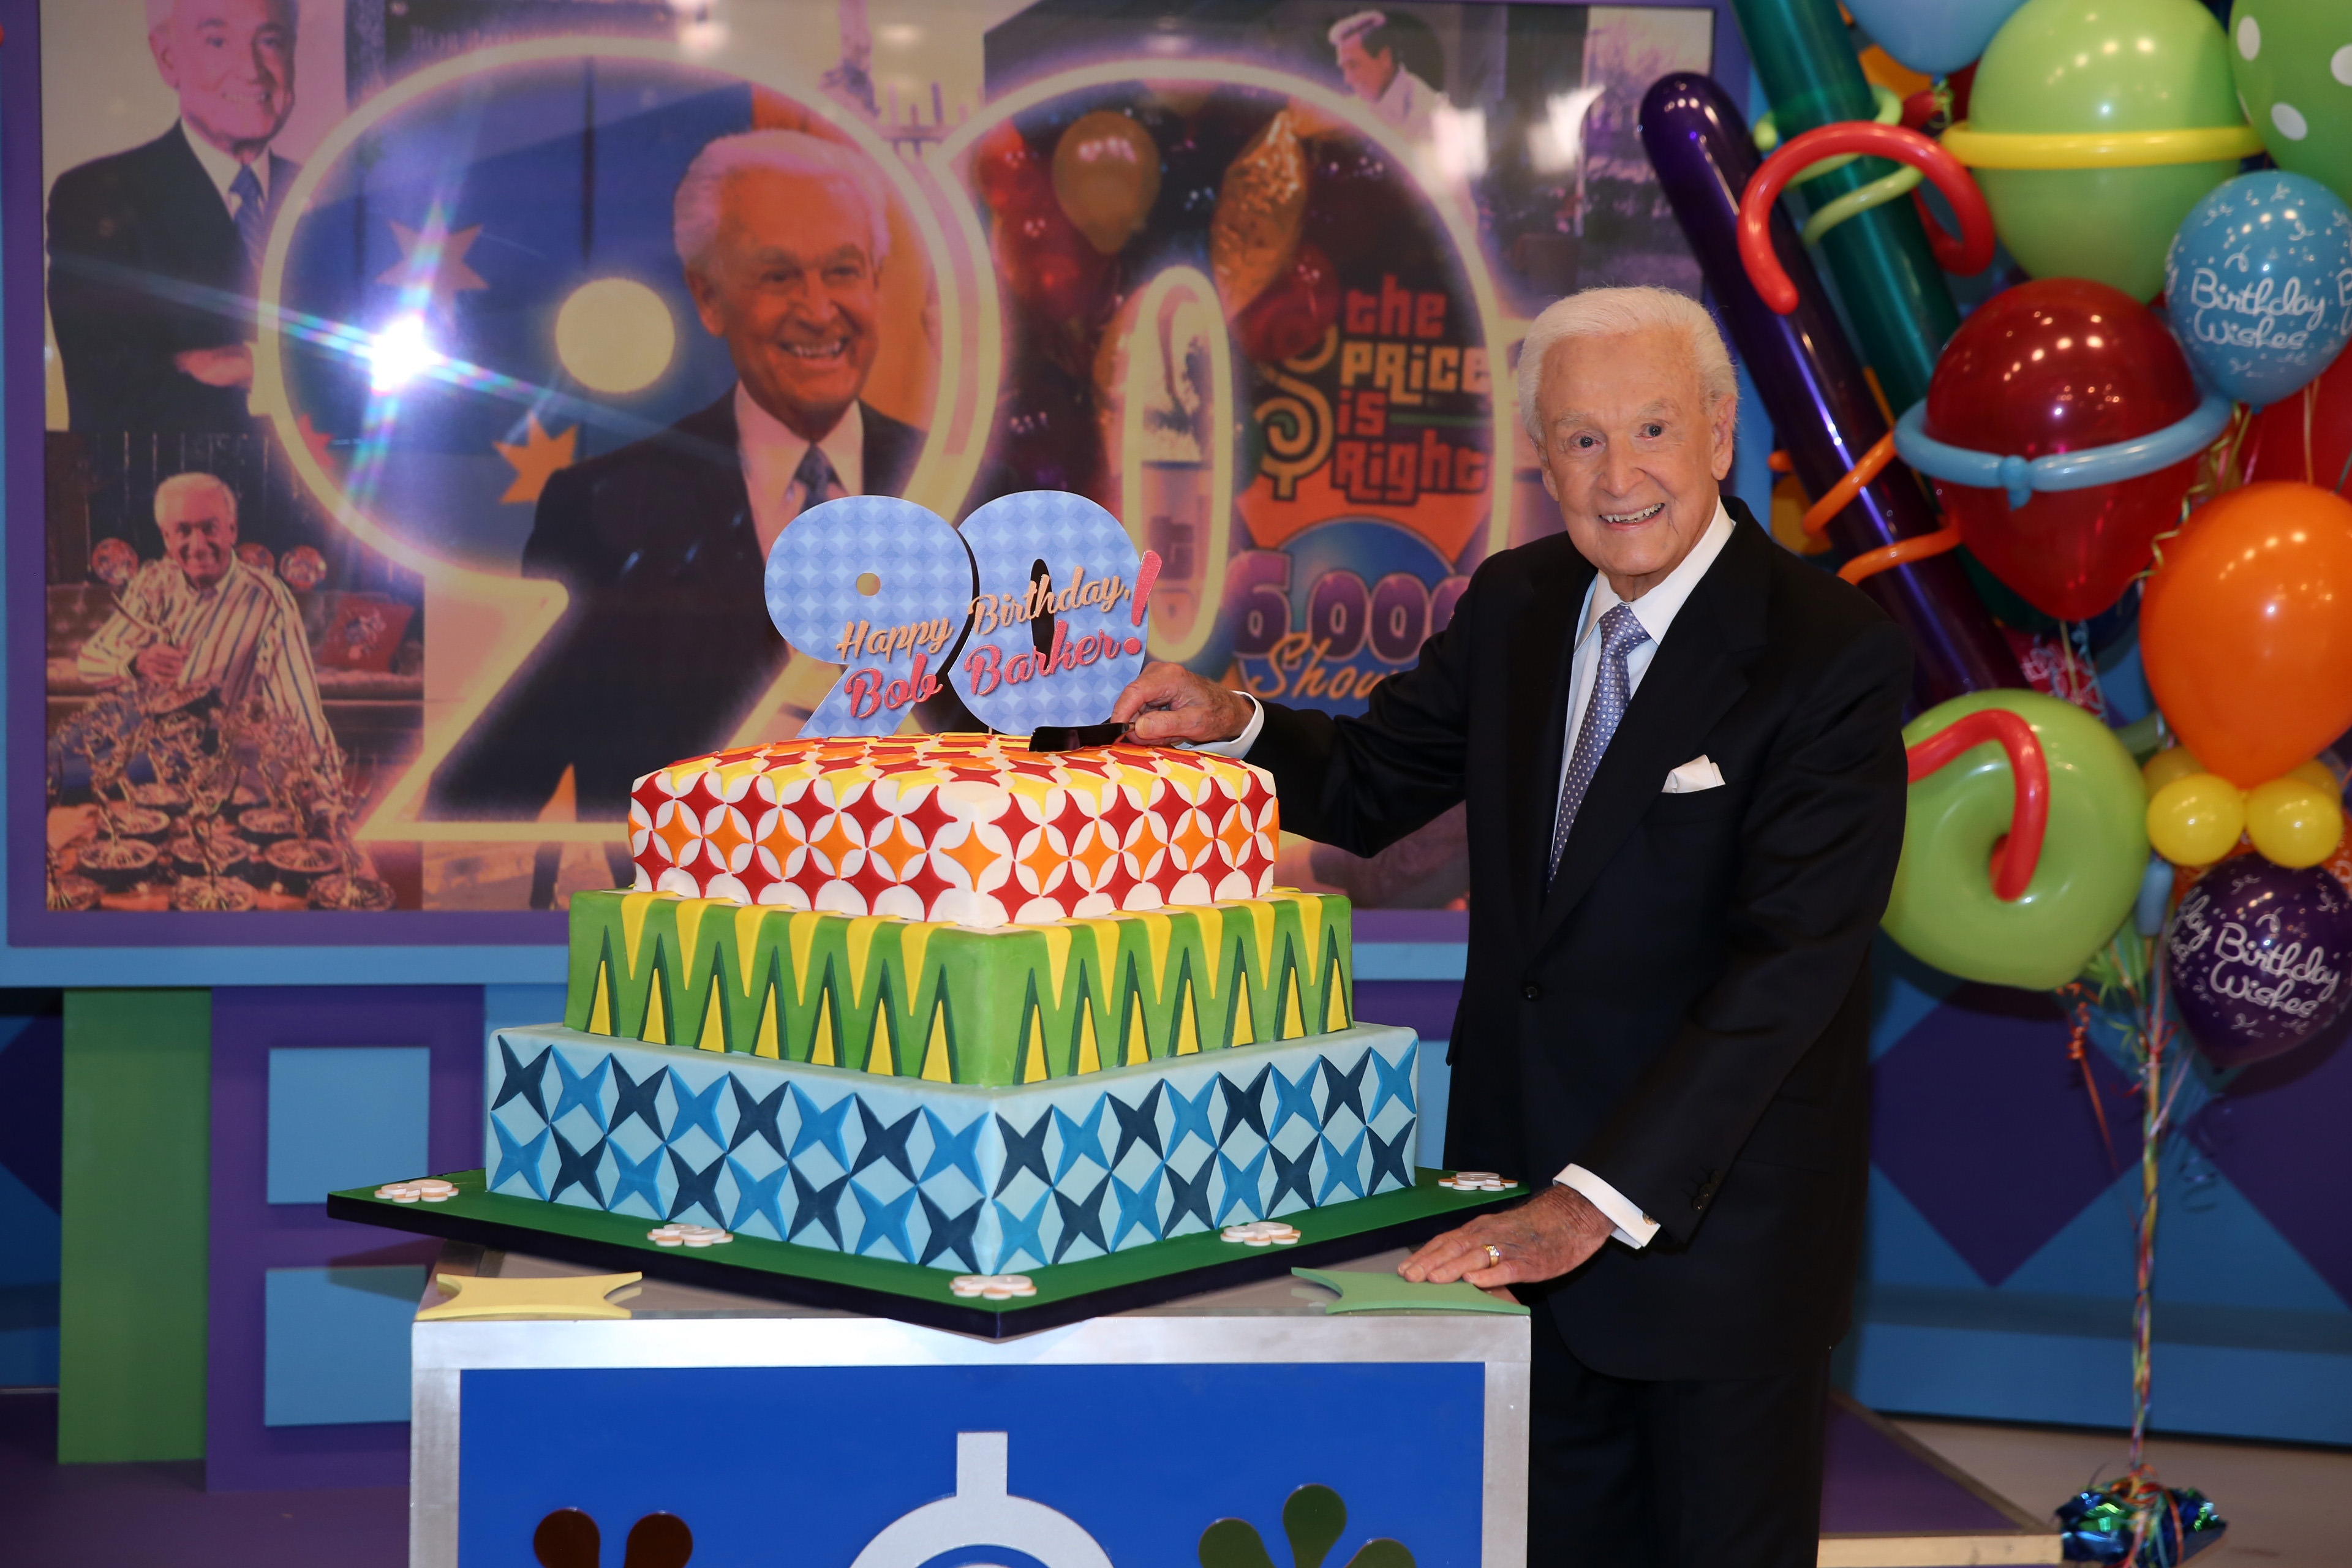 """Veteran game show host Bob Barker, retired, since 2007, was back on the set of """"The Price Is Right"""" for Thursday's show with a cake celebrating his 90th birthday."""